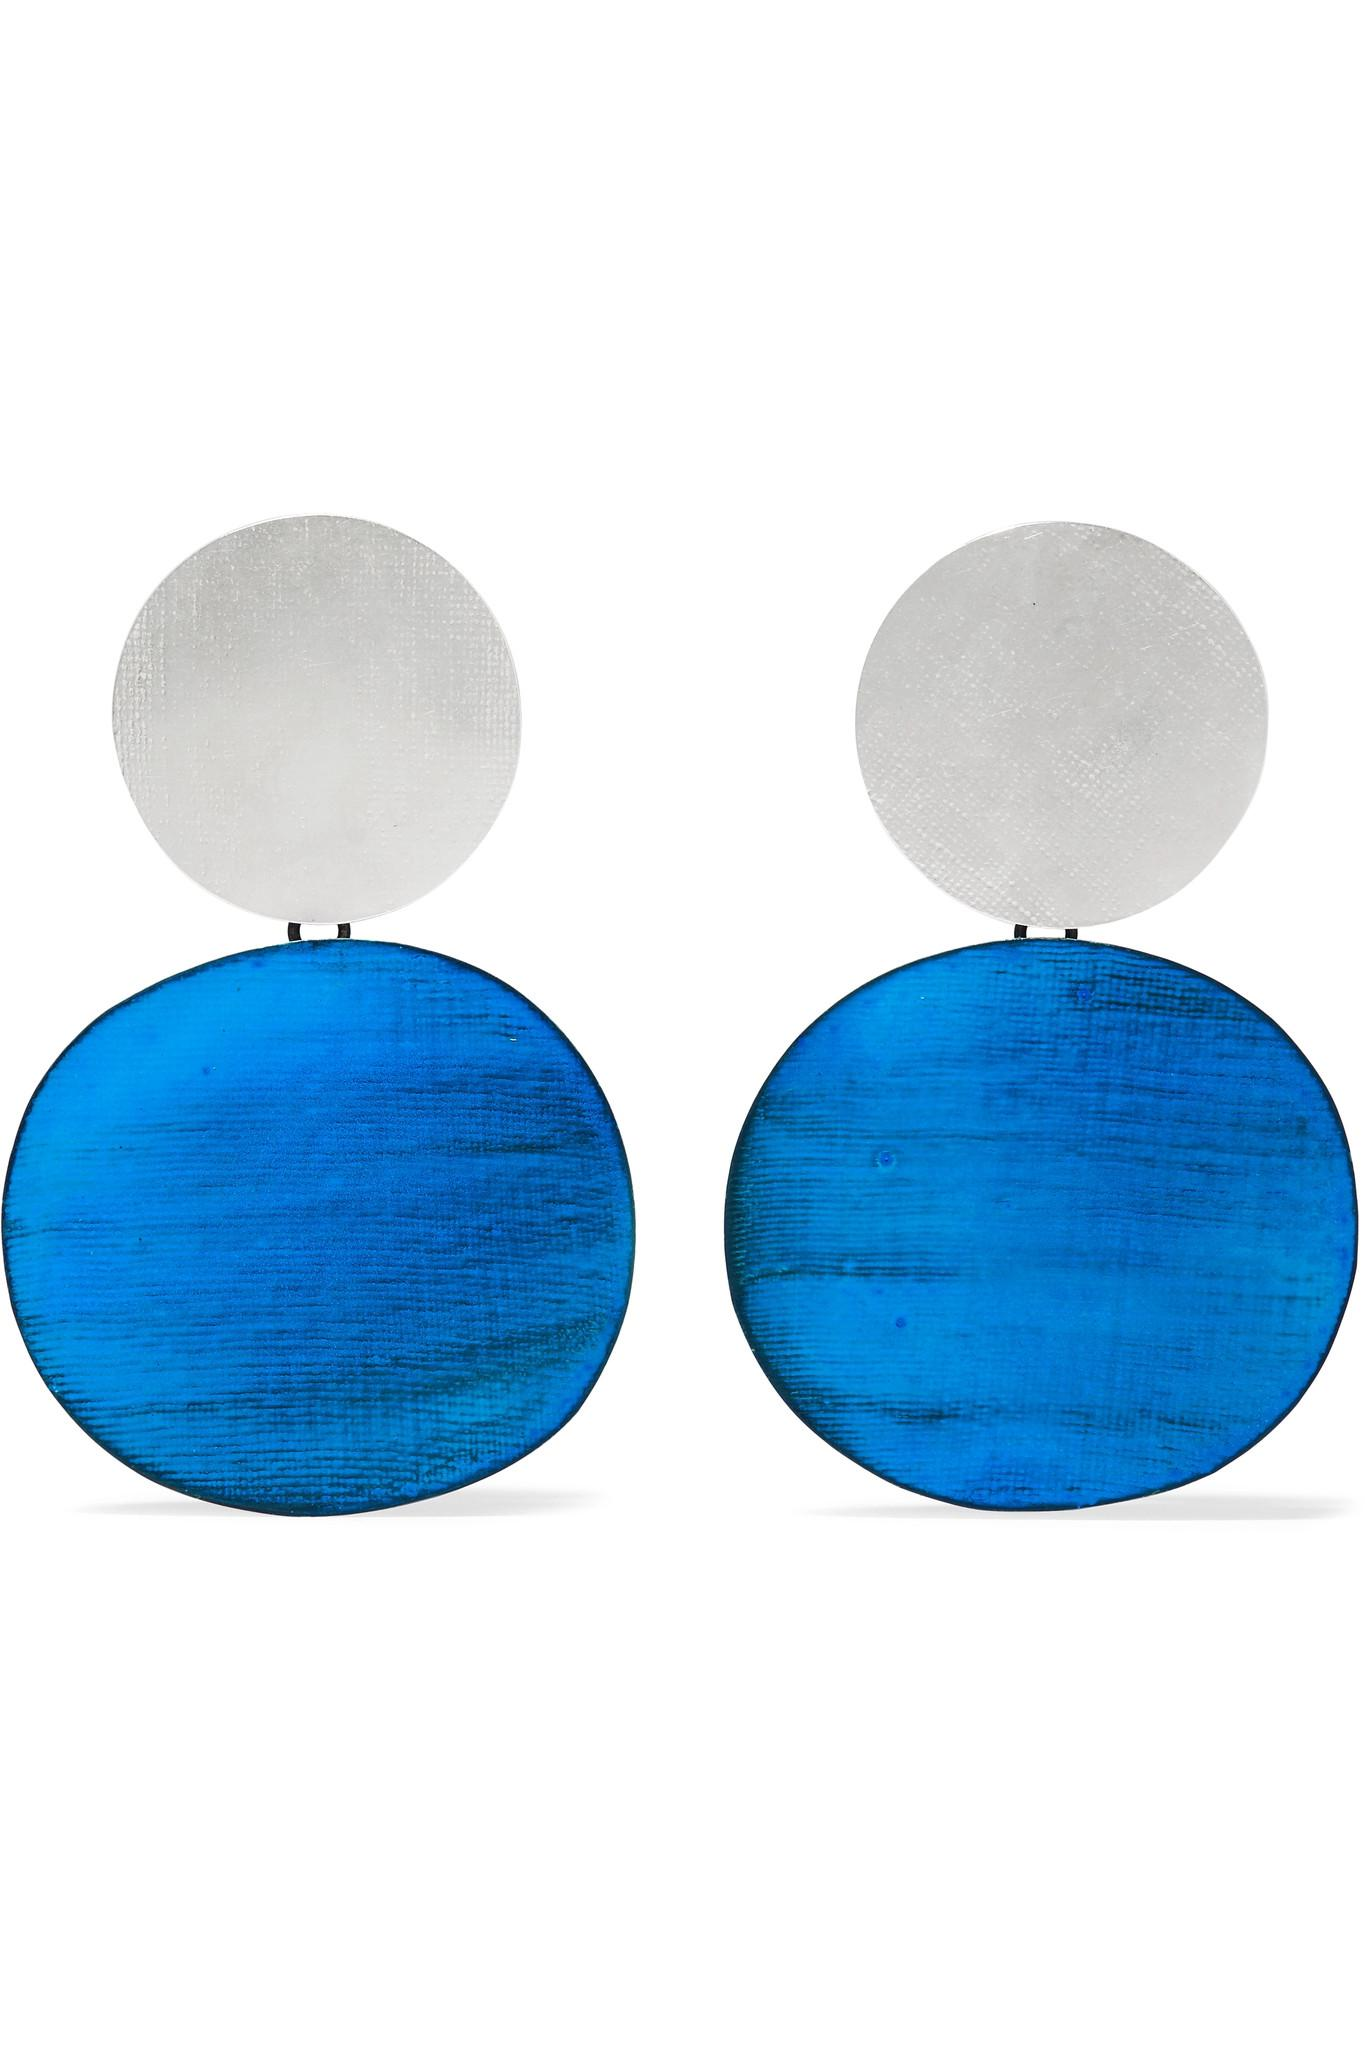 Professional Cheap Price Rain Oxidized Earrings - Blue Annie Costello Brown Best Prices Outlet Order Clearance Explore Online For Sale Q8e8m5